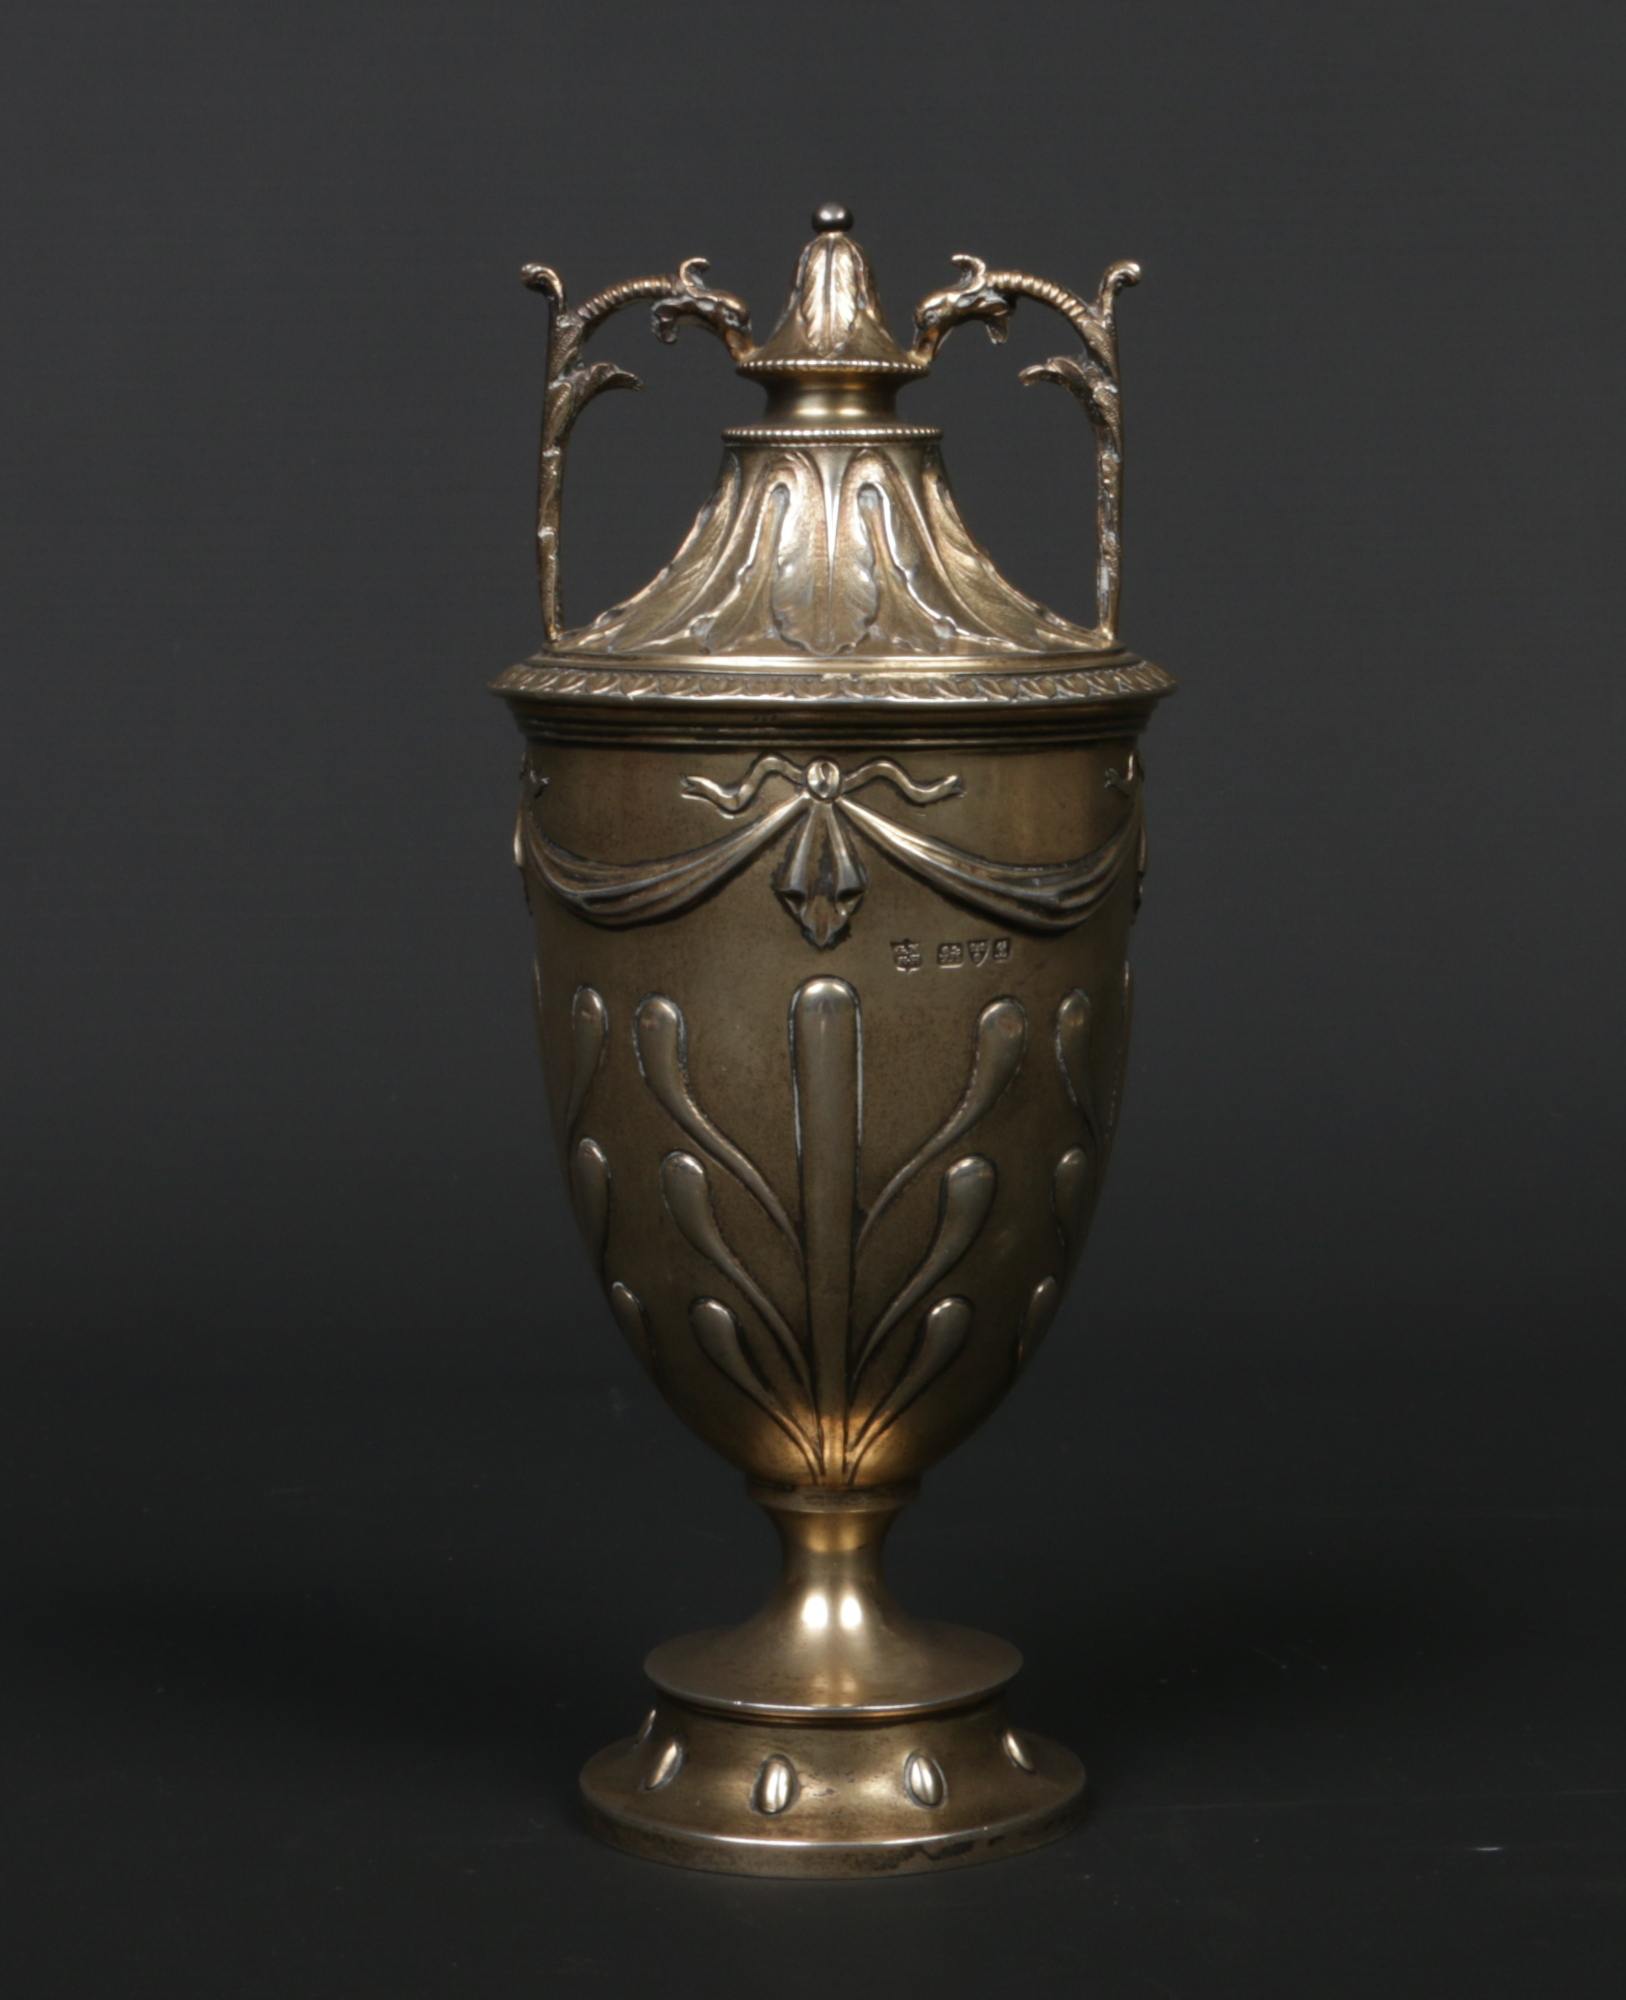 Lot 381 - A George V silver twin handled trophy by George Nathan & Ridley Hayes. Embossed with acanthus